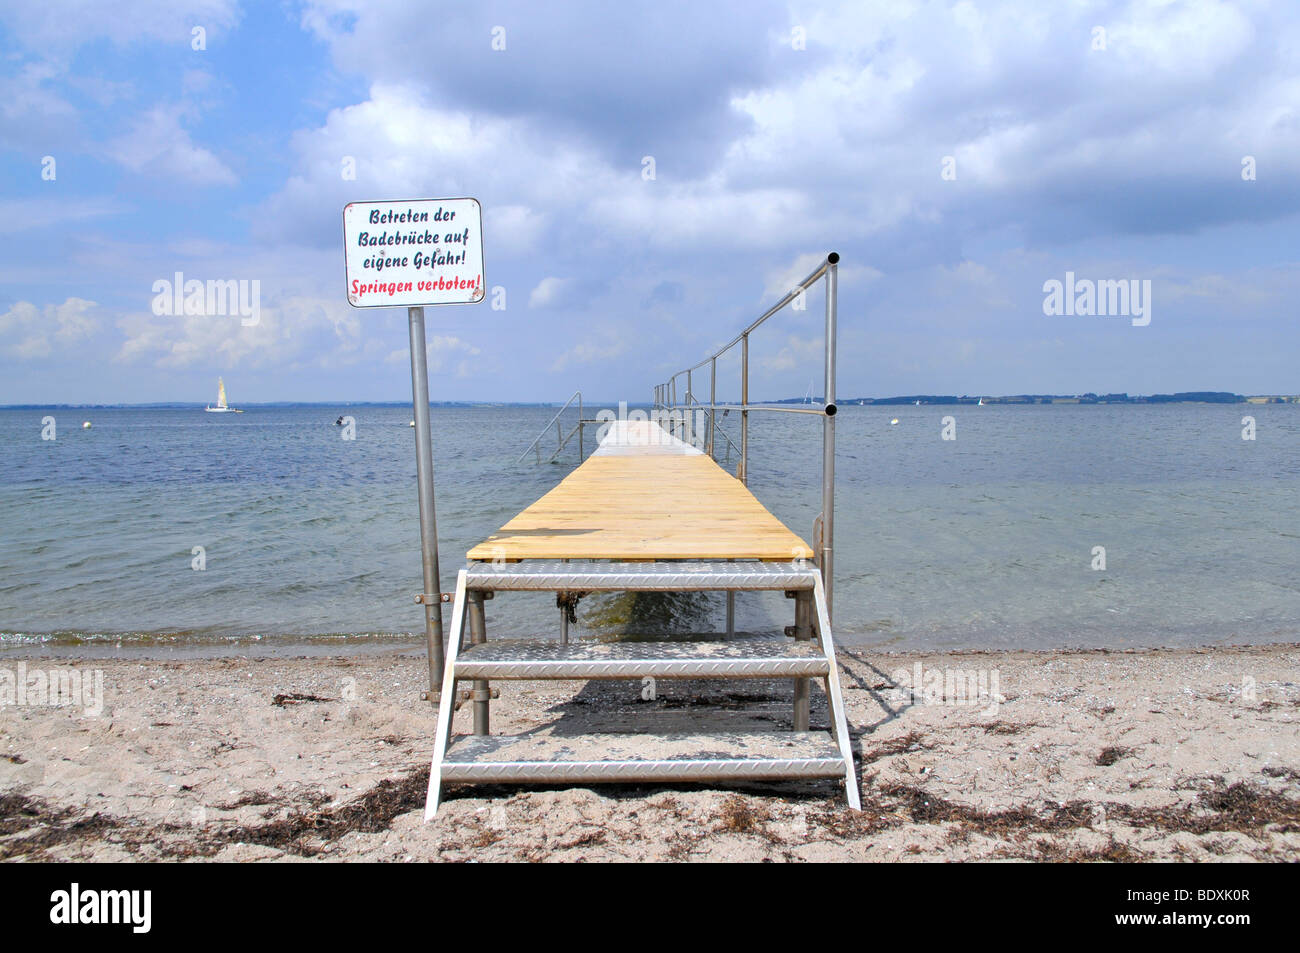 Bathing pier on the beach of Langballigau, Baltic Sea, Schleswig-Holstein, northern Germany, Germany, Europe - Stock Image